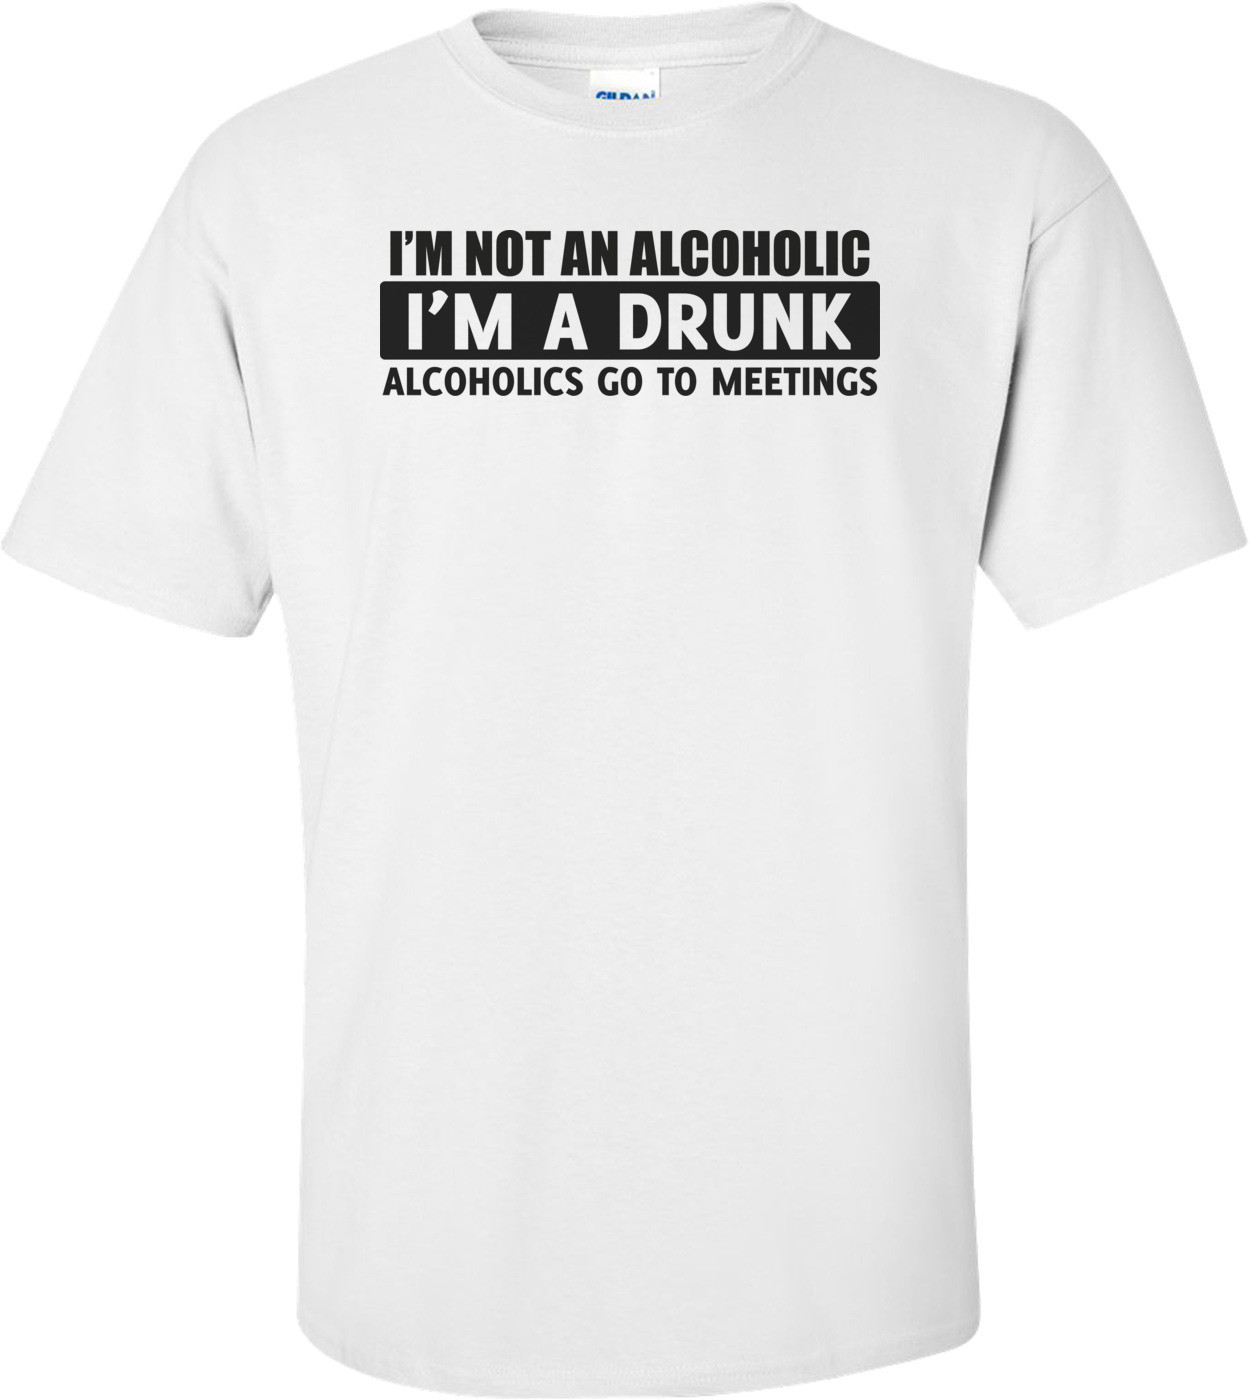 I'm Not An Alcoholic, I'm A Drunk